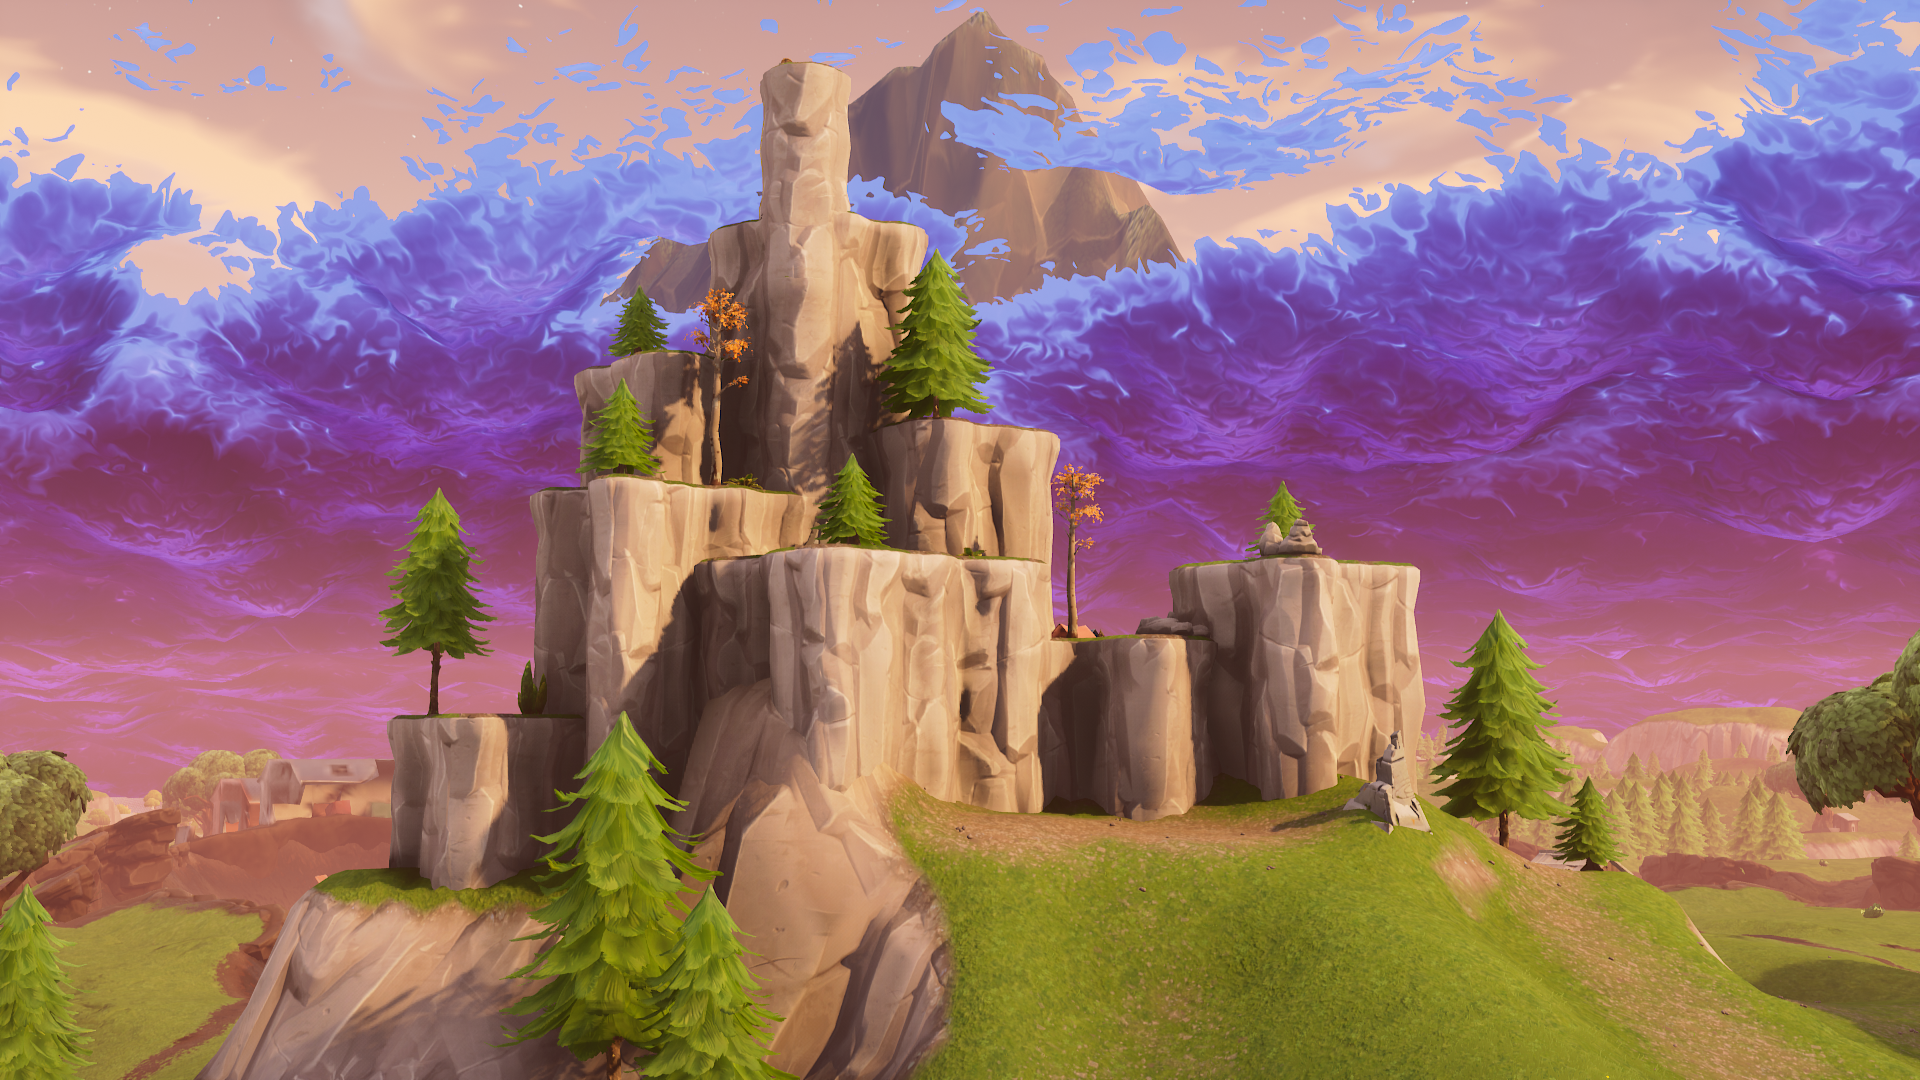 Pin By Meatloaf321 On Fortnite In 2020 Wallpaper Backgrounds Background Wallpaper Crafts